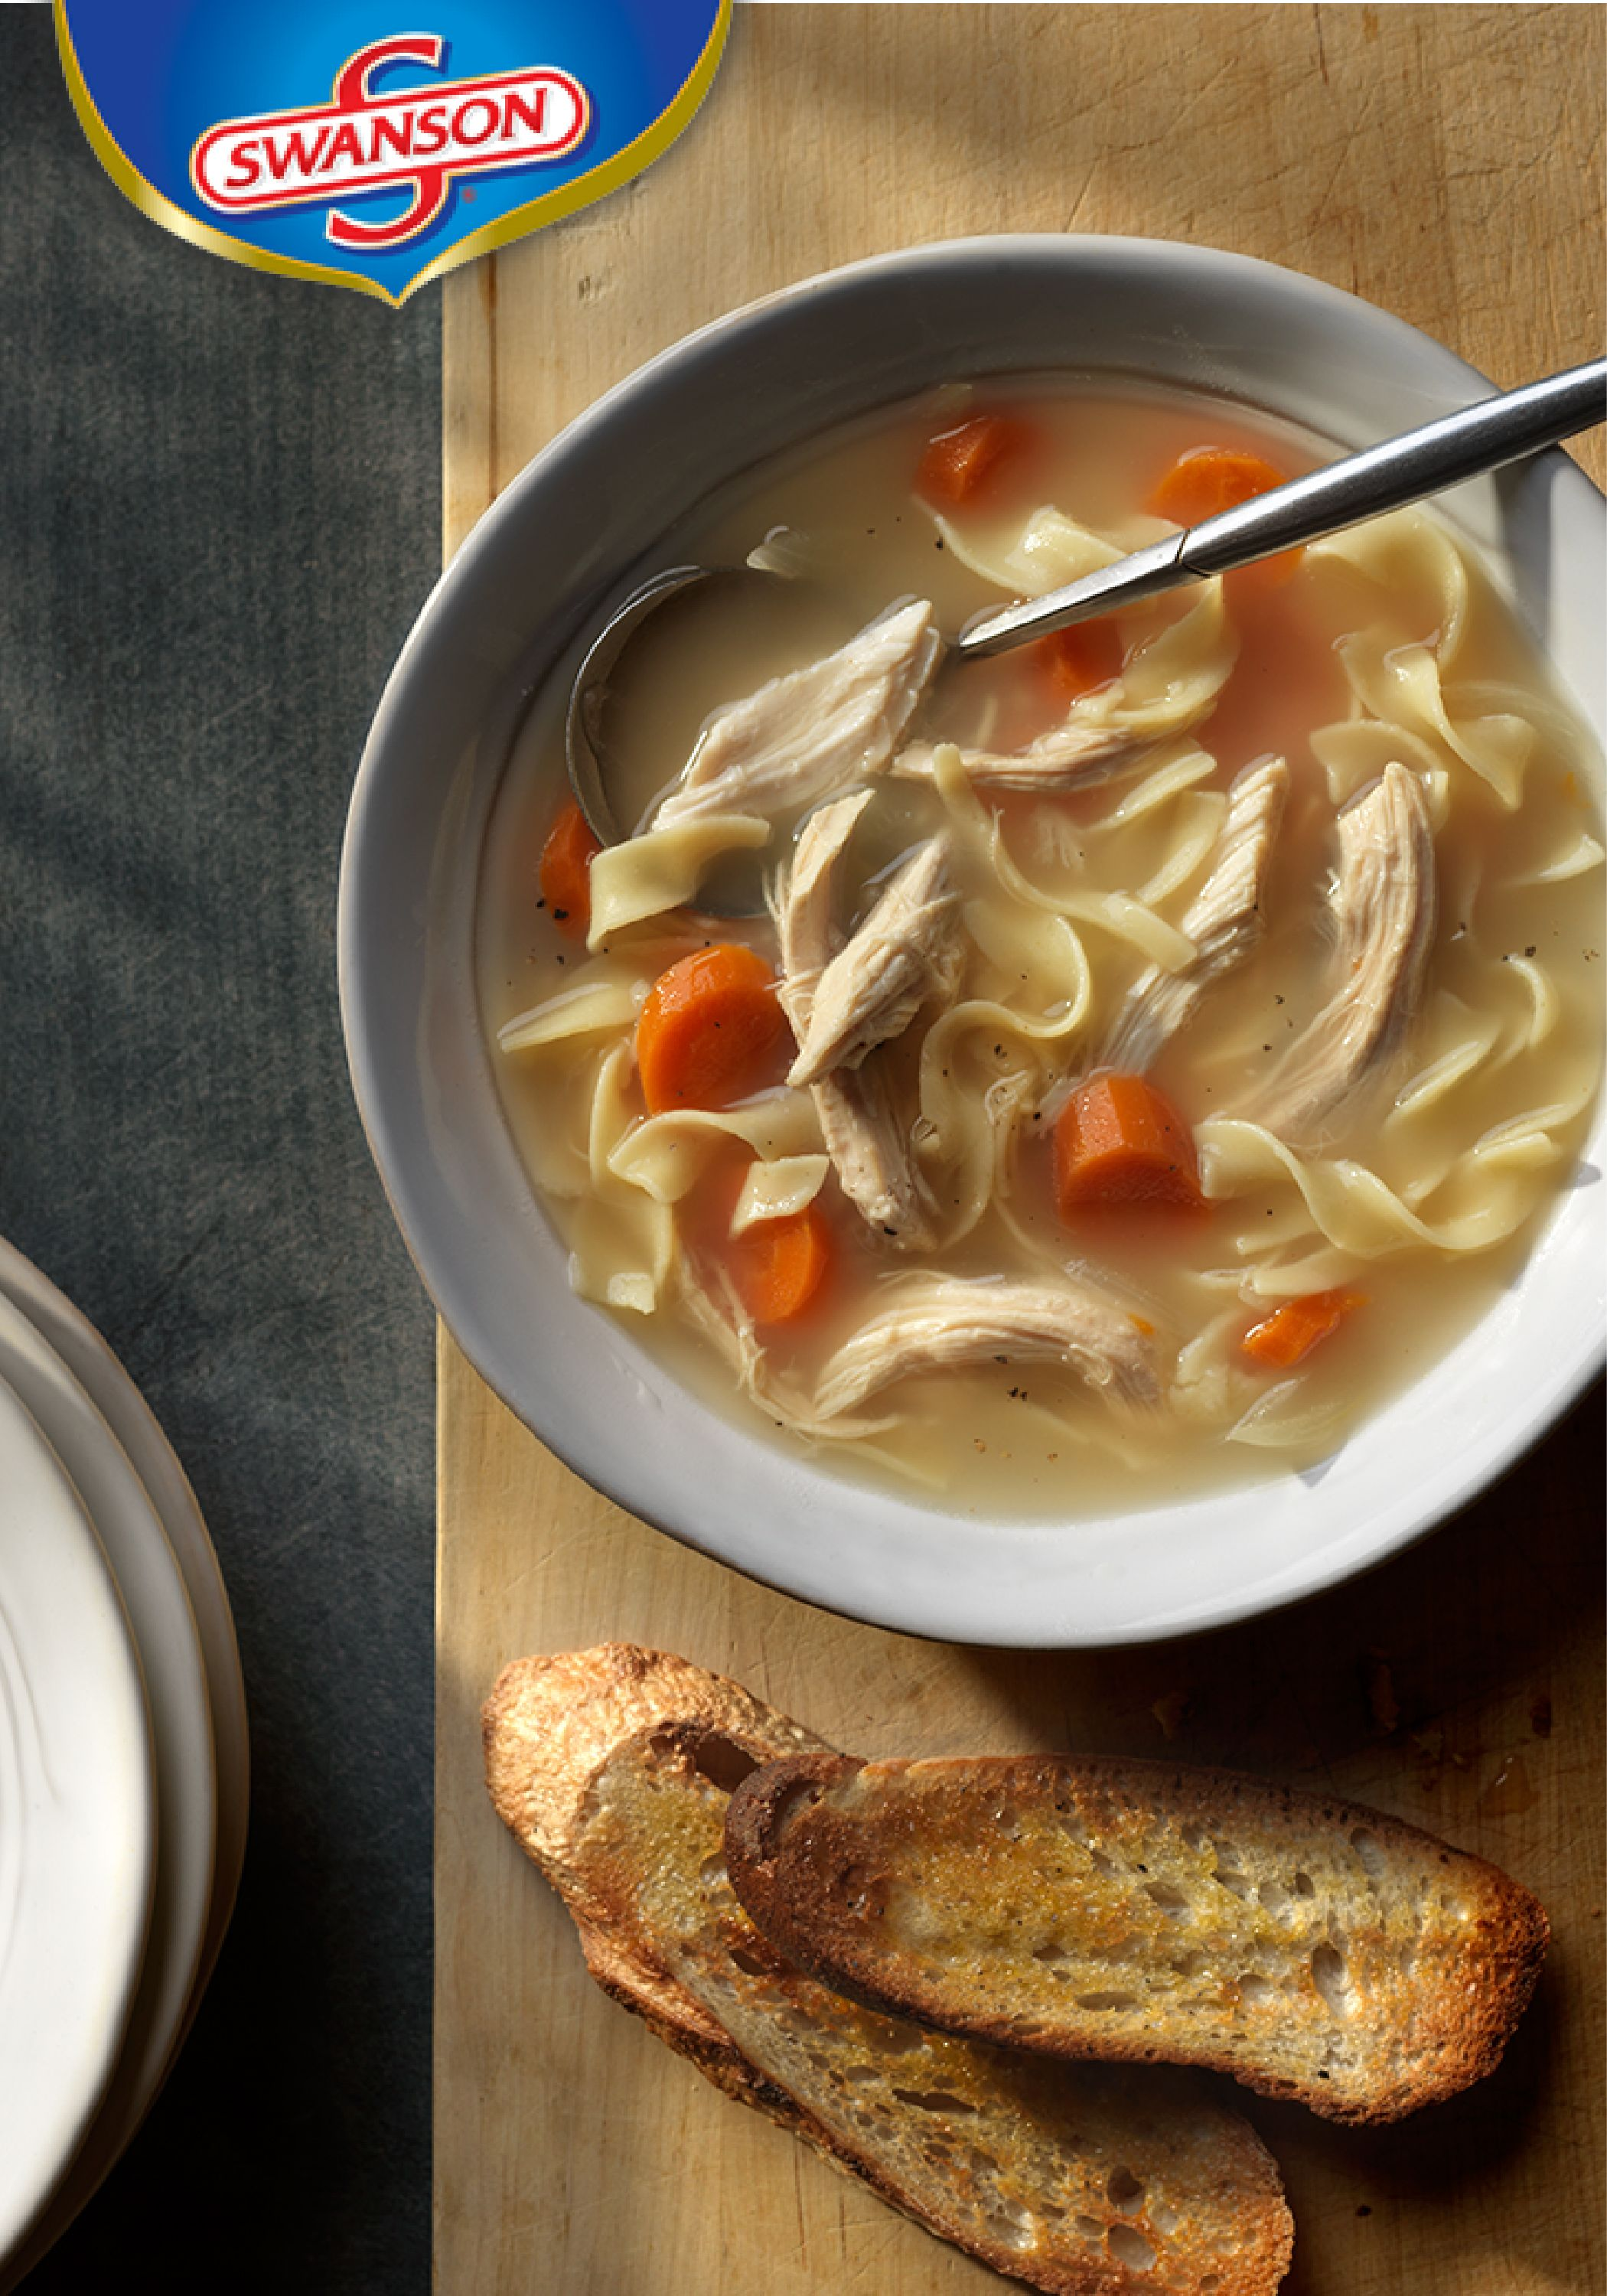 Hearty Homemade Chicken Noodle Soup Express Recipe Soup Recipes Chicken Noodle Chicken Noodle Soup Easy Chicken Noodle Soup Homemade